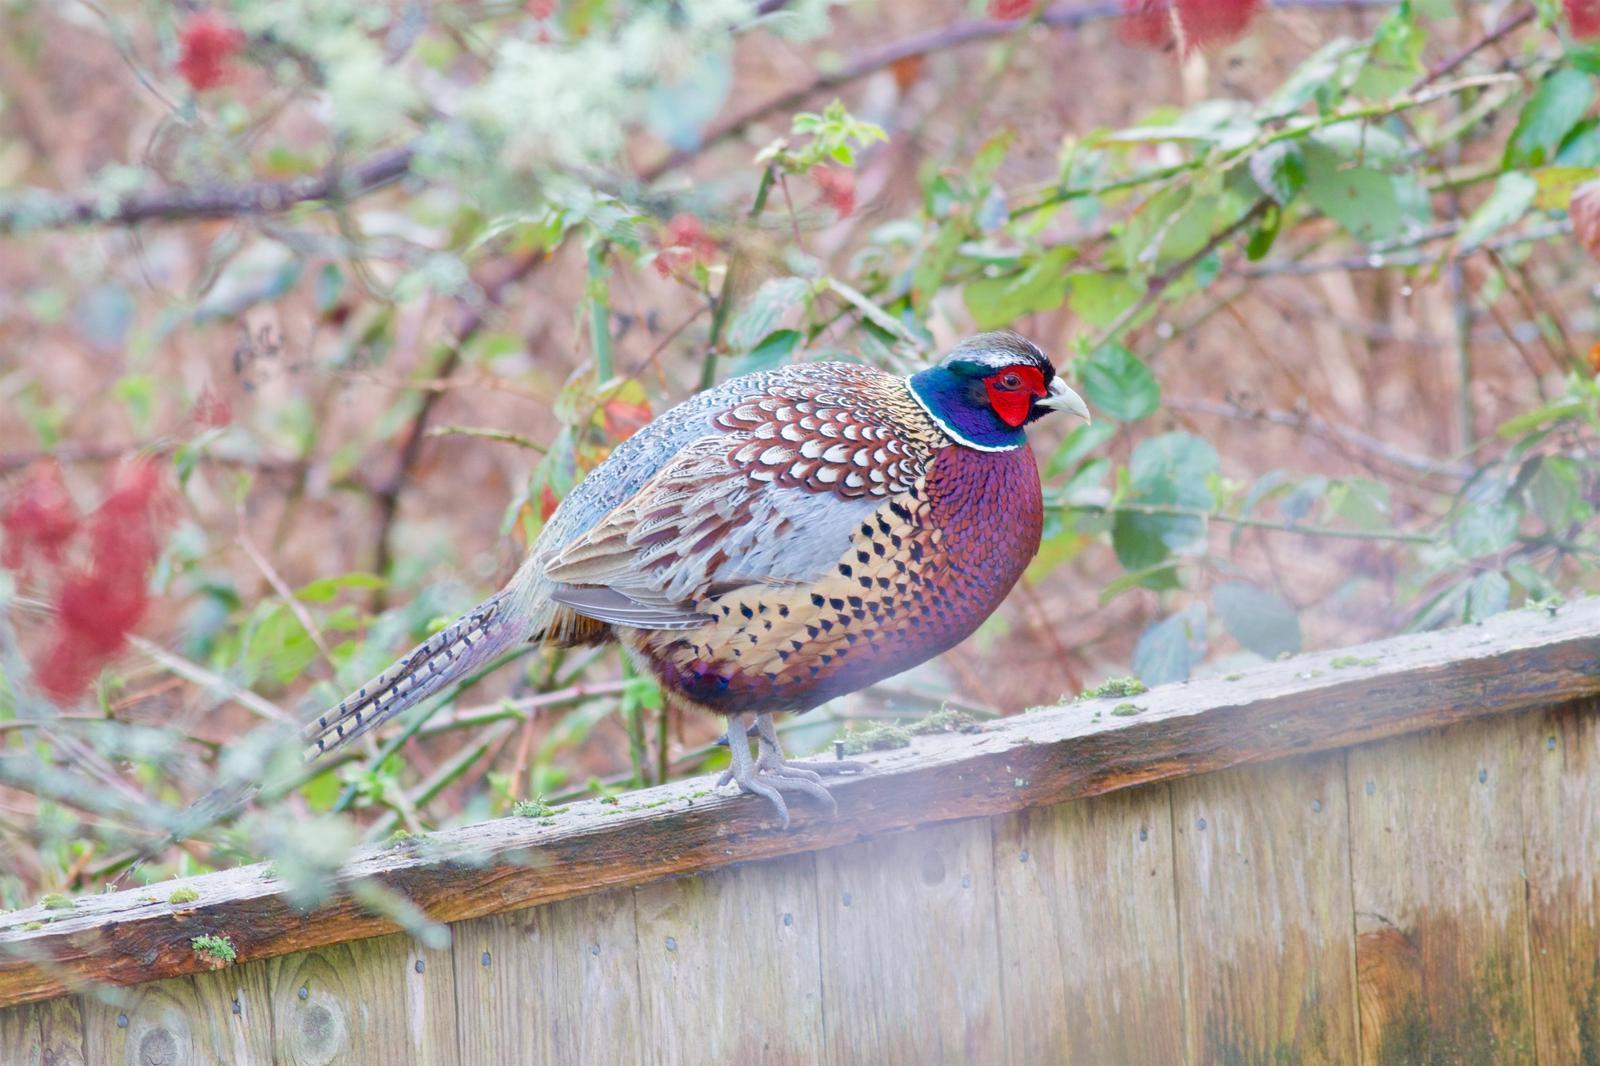 Ring-necked Pheasant Photo by Kathryn Keith